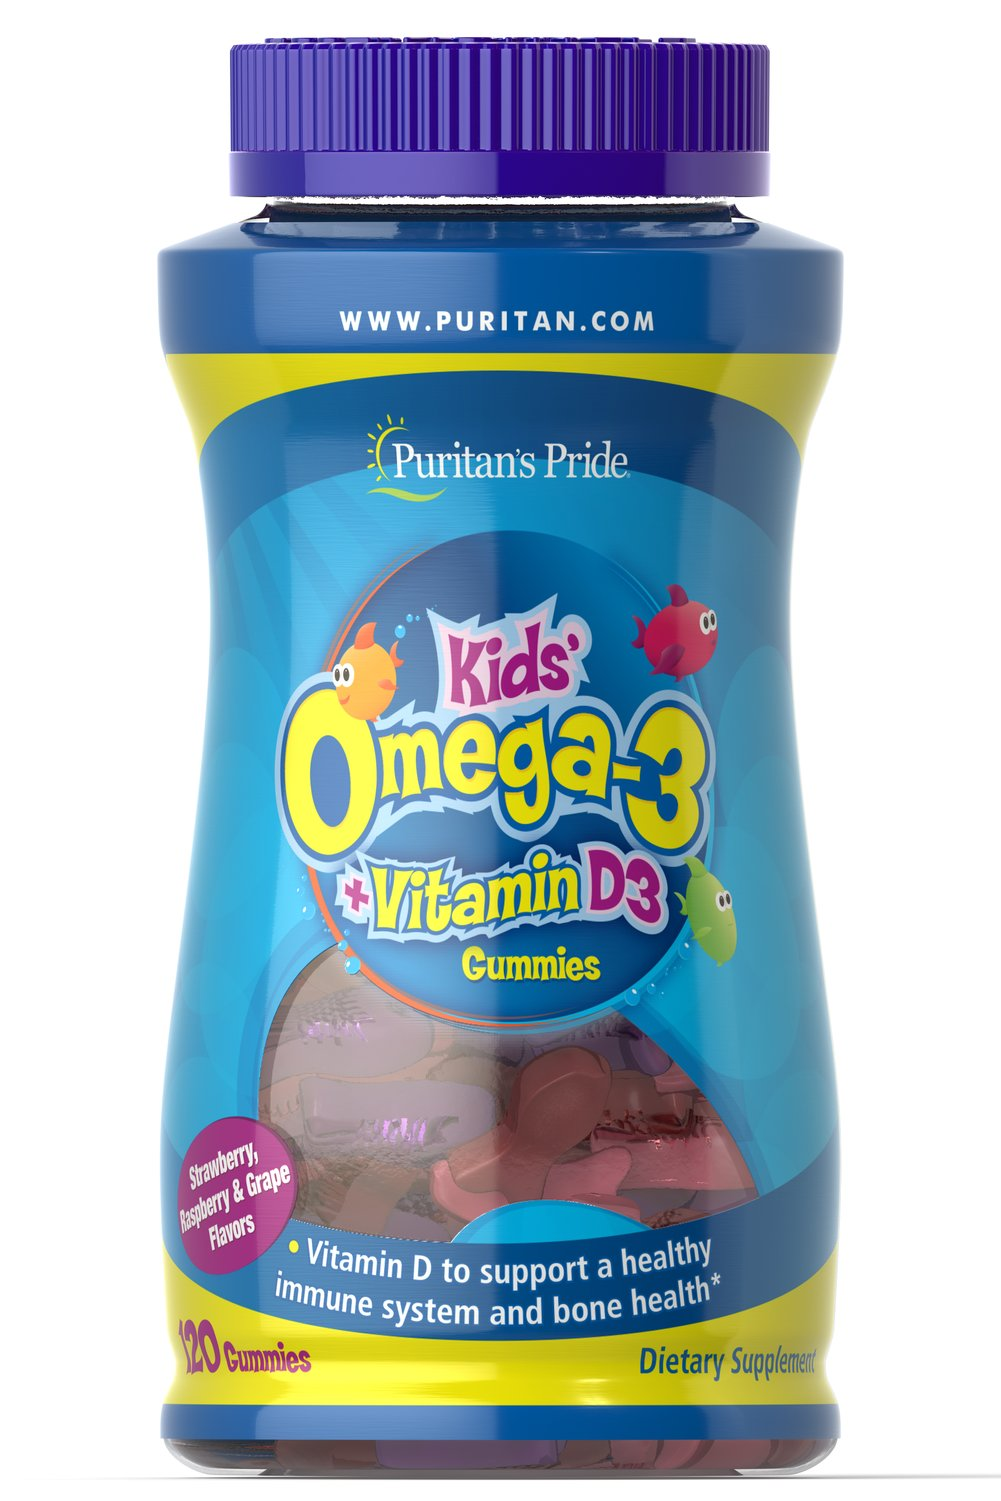 Children's Omega 3, DHA & D3 Gummies <p>Yummy gummies contribute to your child's healthy growth and development**</p><p>Each gummy provides your child with essential Omega-3 fatty acids</p><p>No artificial colors, flavors or sweeteners</p><p>Preservative and gluten-free</p><p>Delicious gummies come in strawberry banana, orange peach and green apple flavors</p> 120 Gummies  $29.99